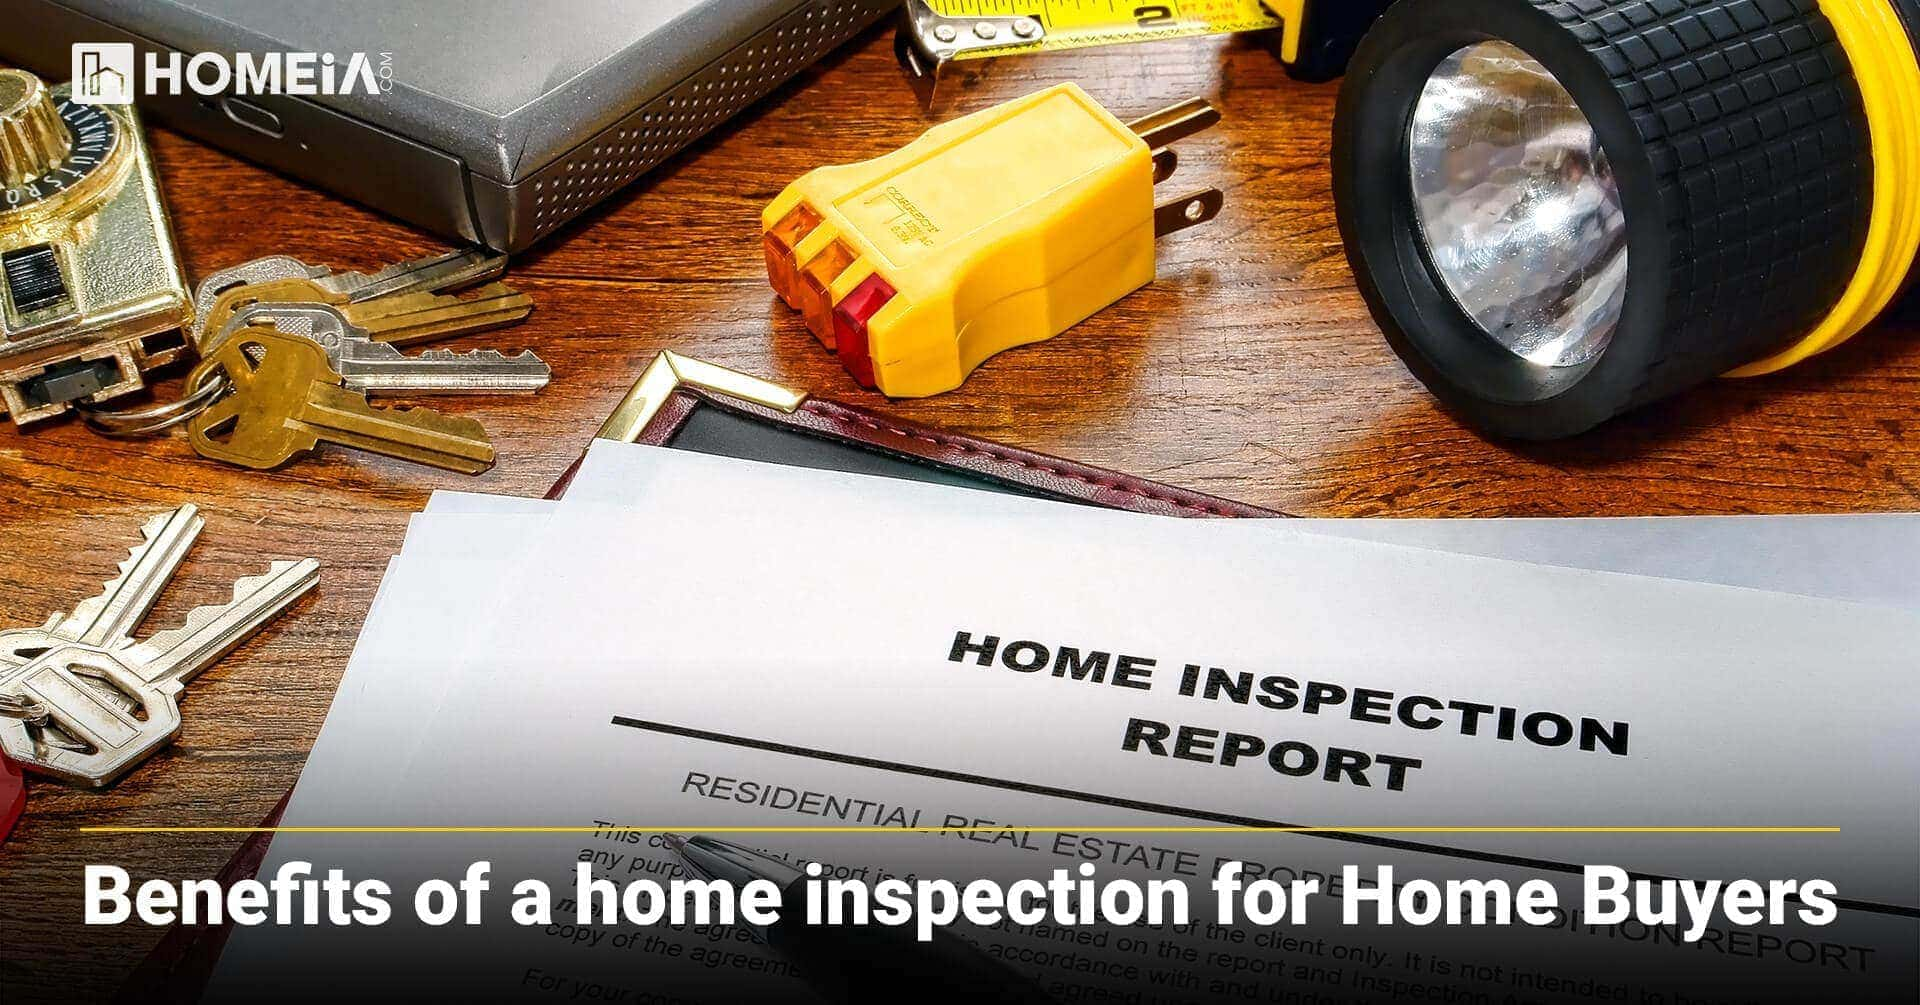 Benefits of a home inspection for Home Buyers